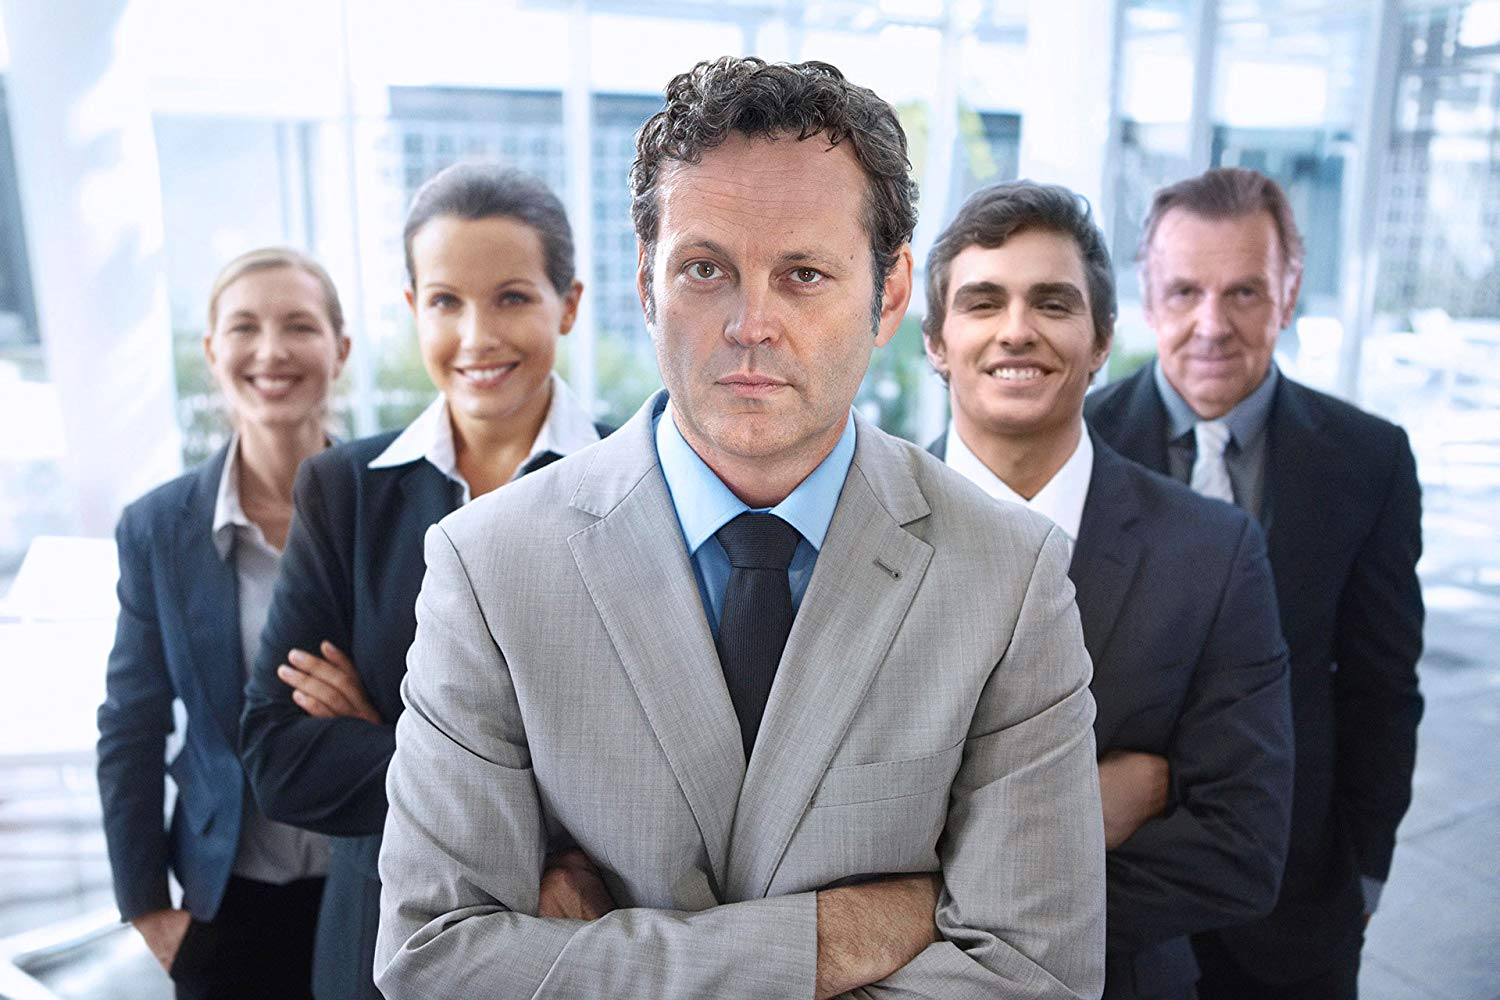 Vince Vaughn and the cast of Unfinished Business posing for every generic stock photo ever.